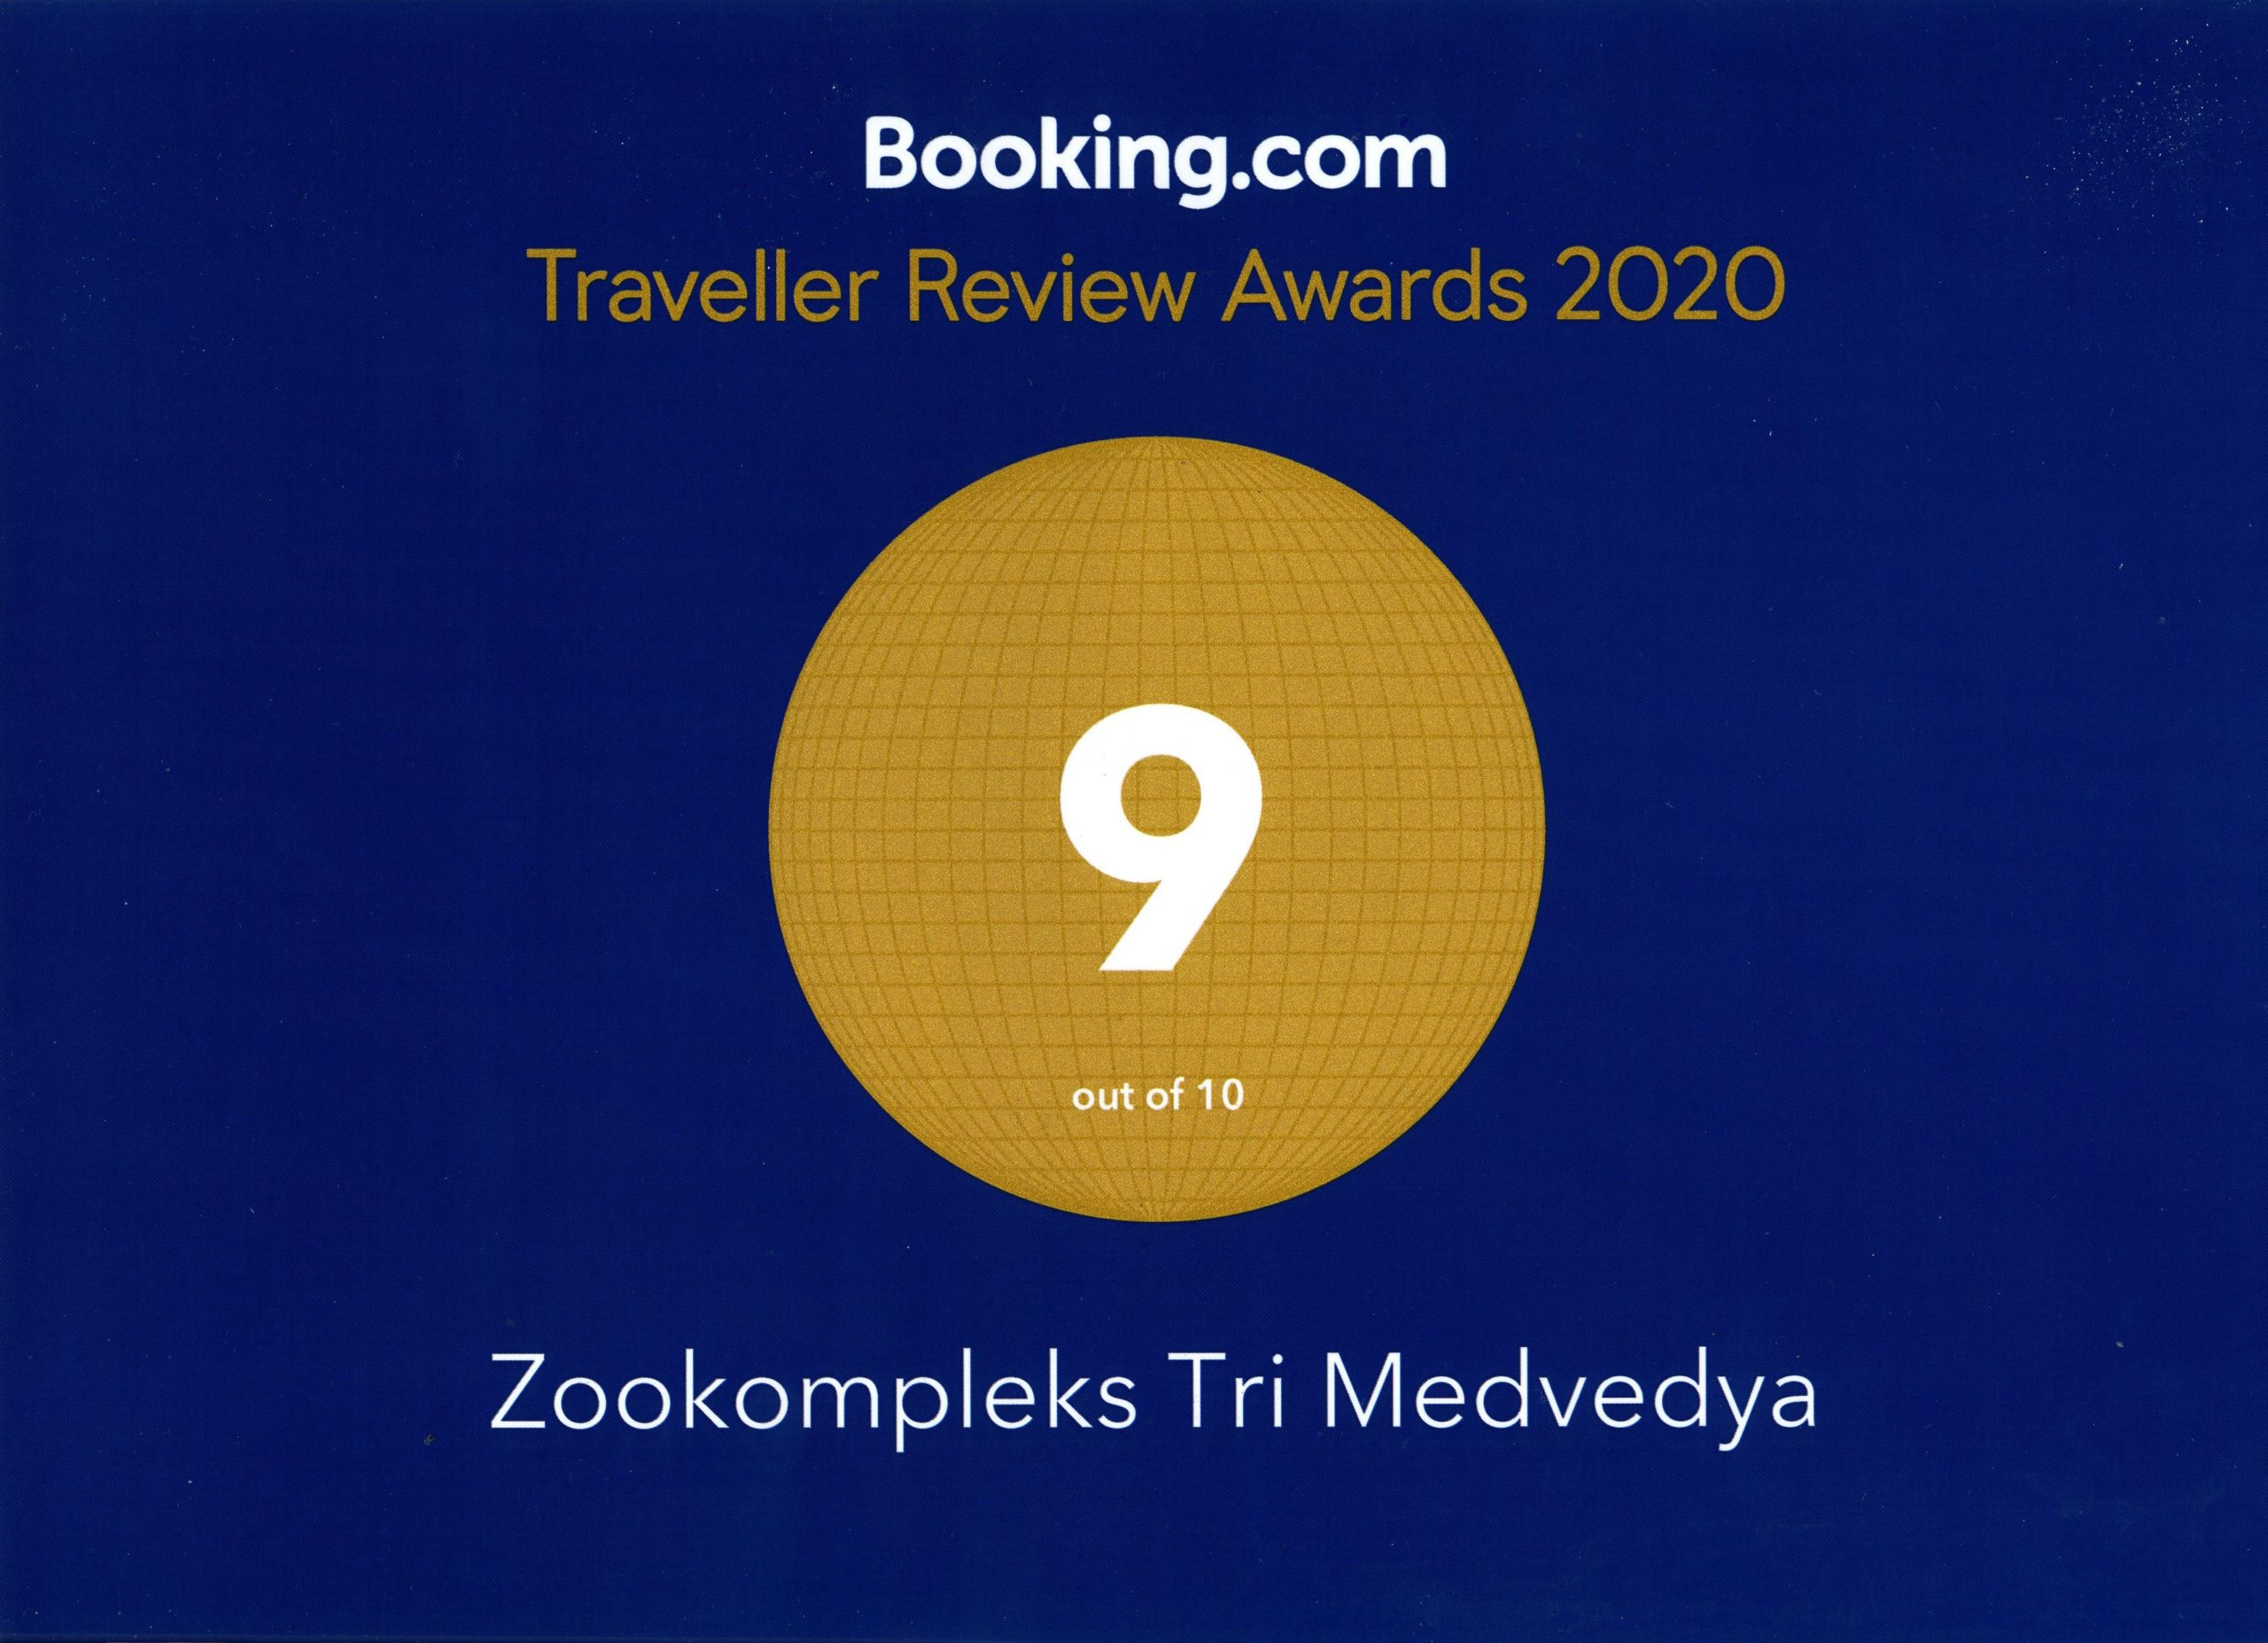 Награда Traveller Review Award 2020 от Booking.com